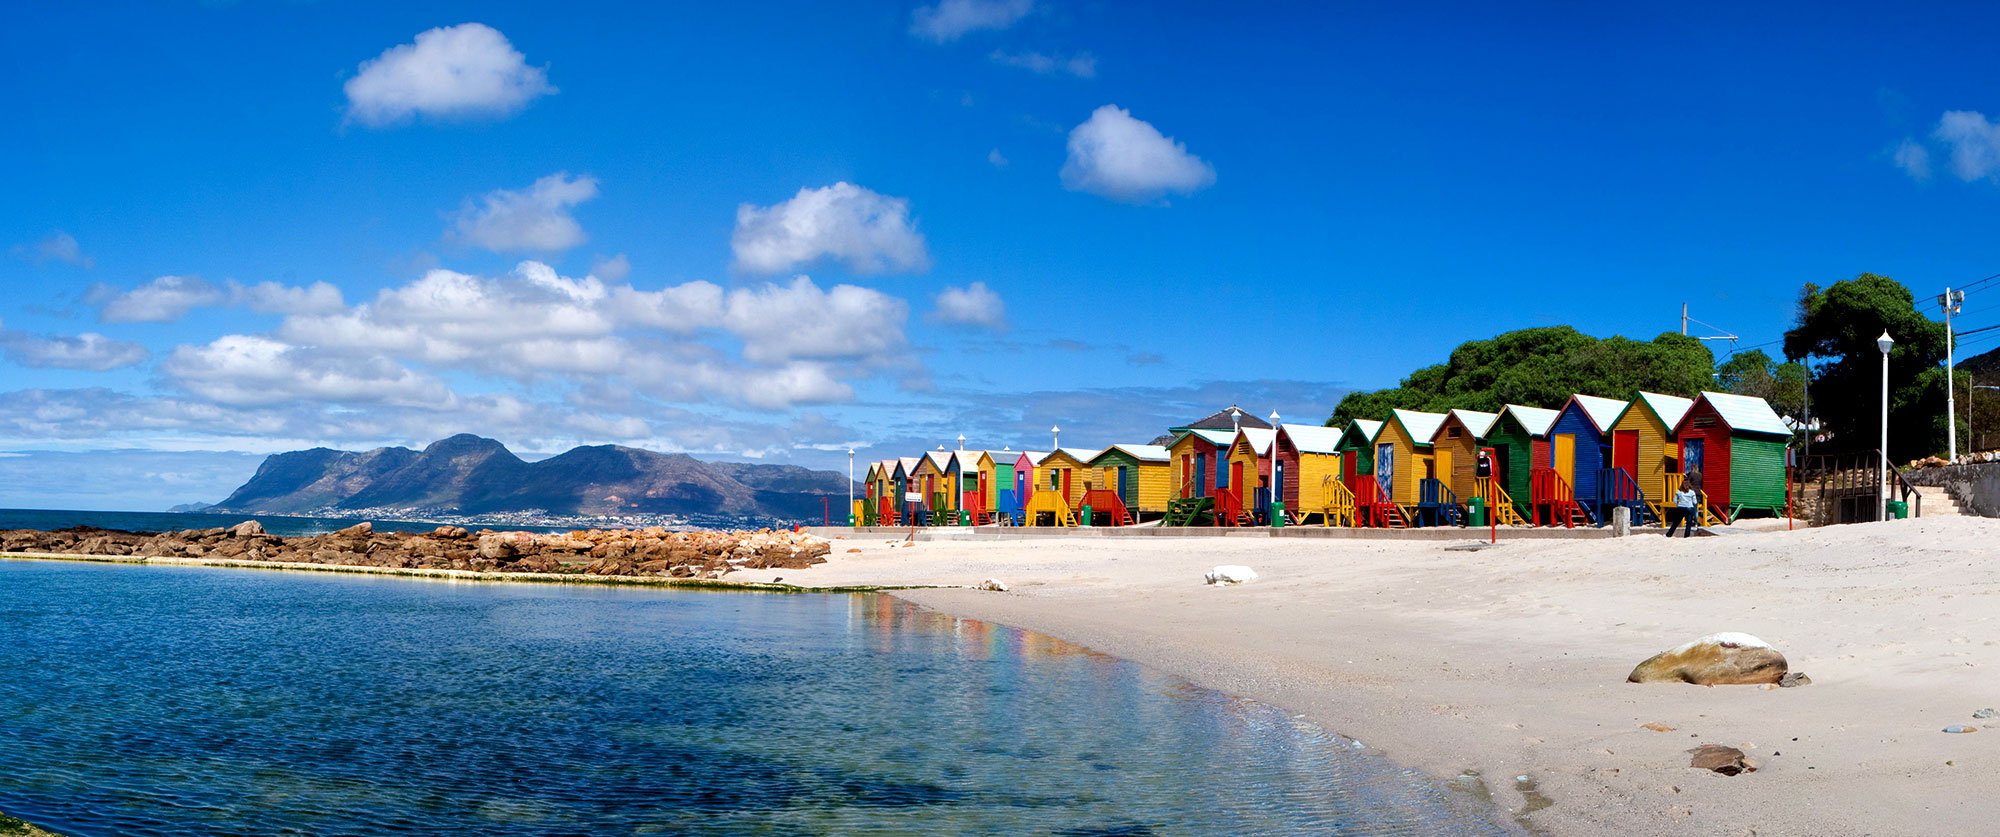 colorful-huts-at-st-james-beach